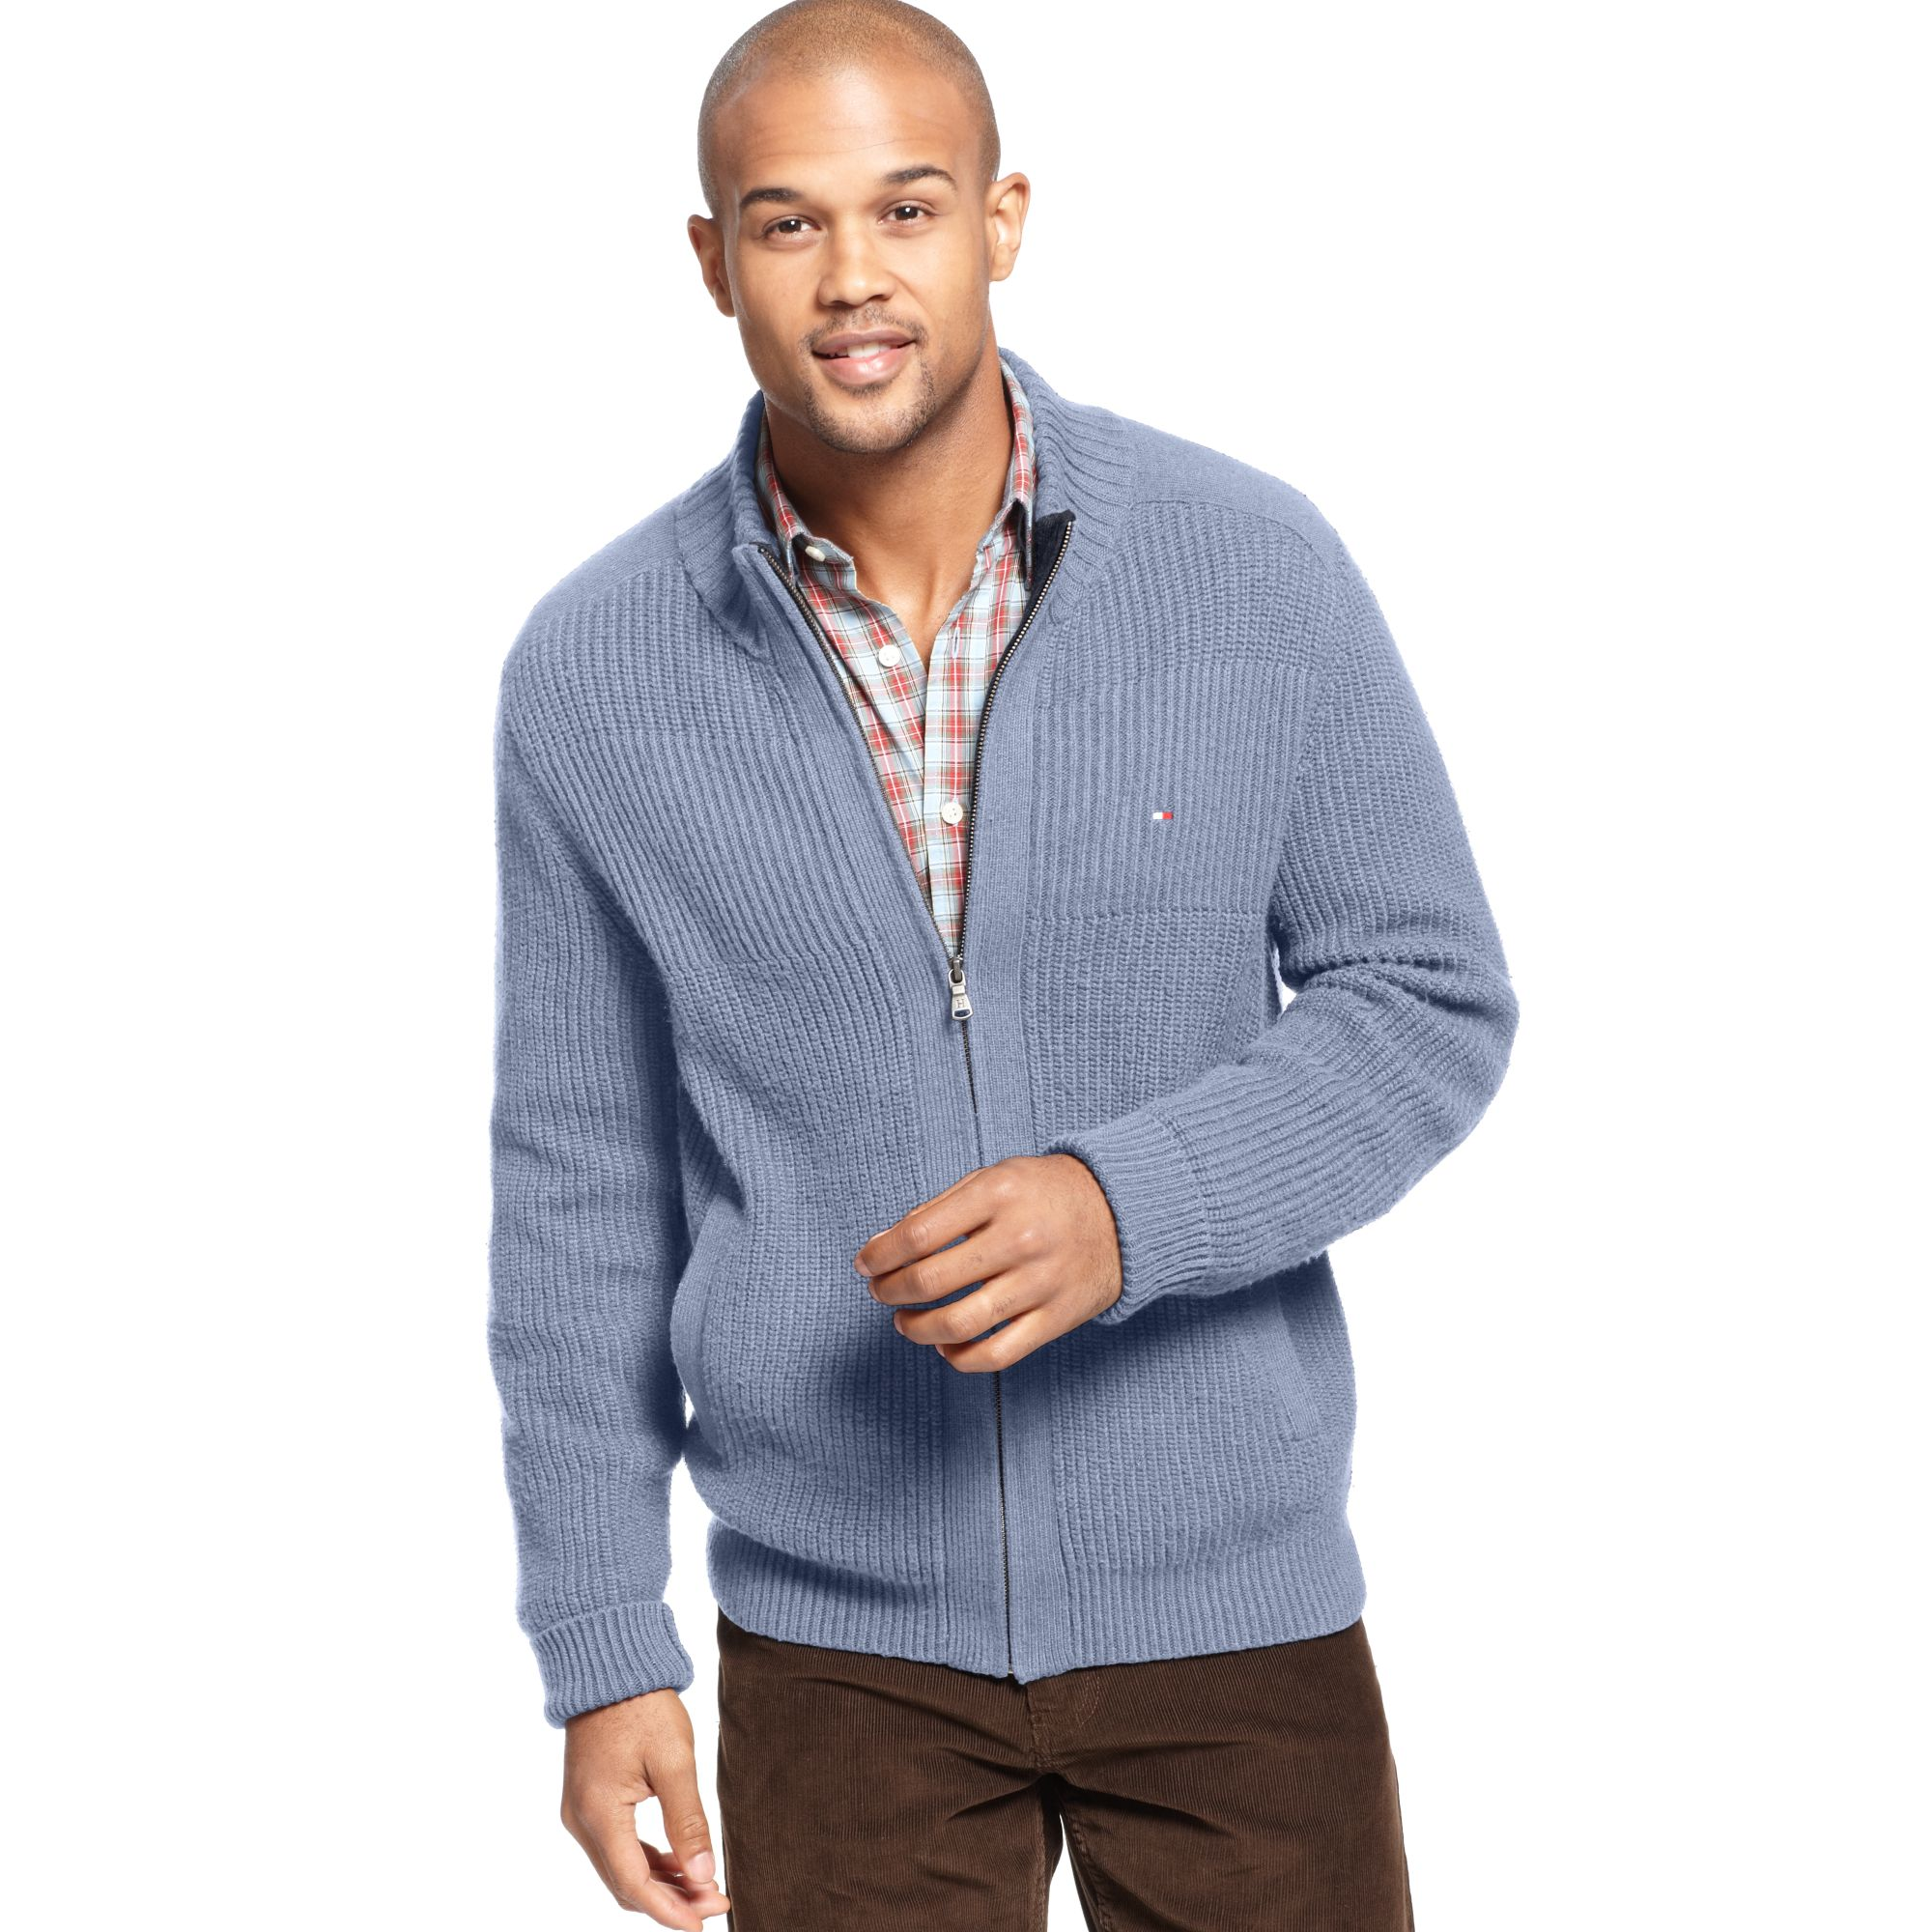 tommy hilfiger zip sweater gray cardigan sweater. Black Bedroom Furniture Sets. Home Design Ideas